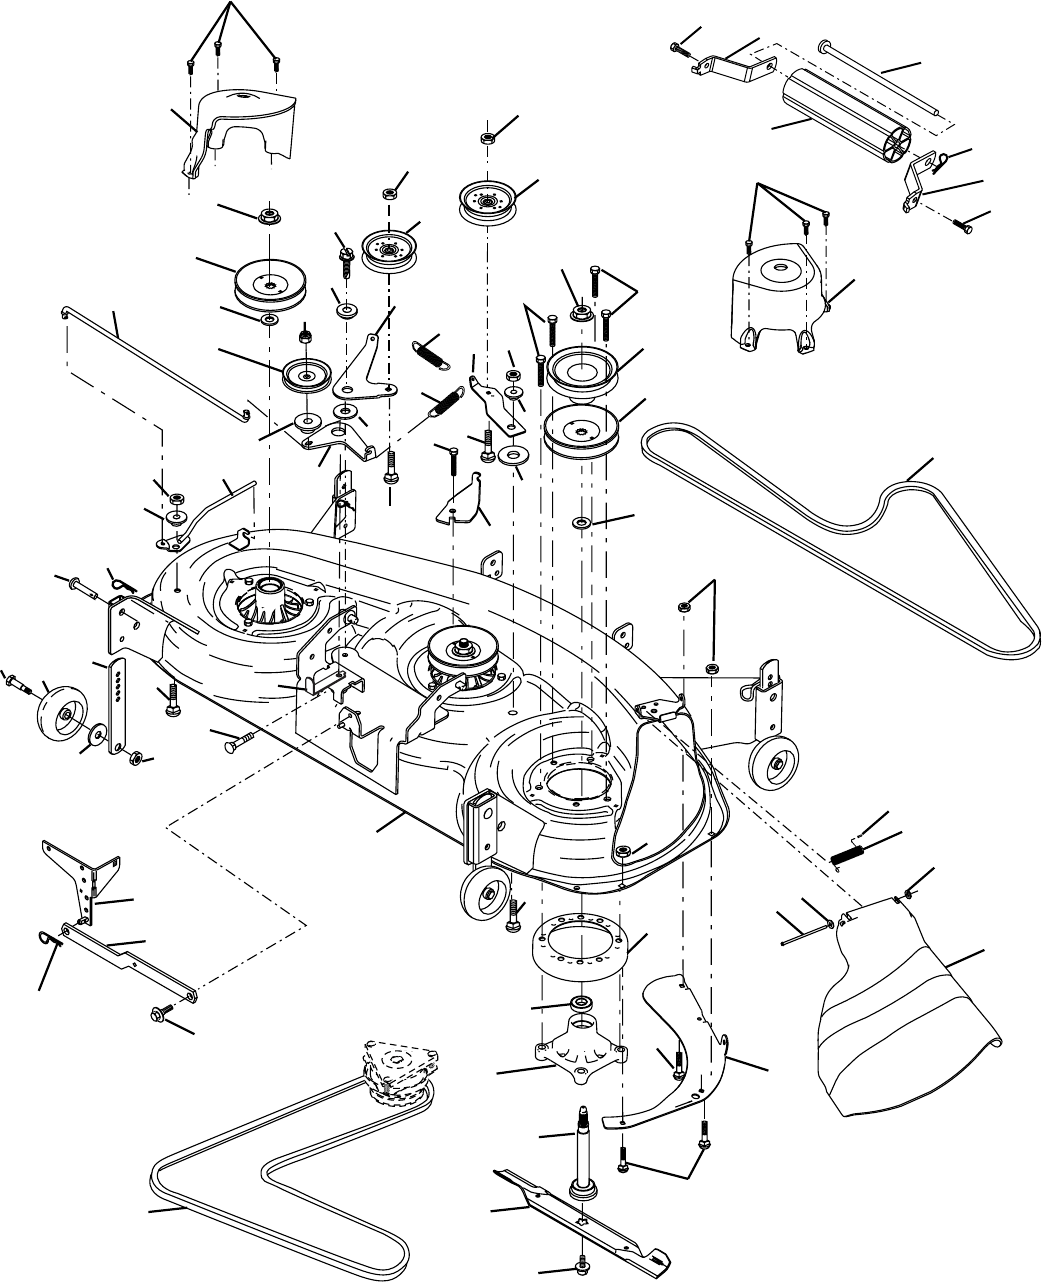 Page 46 of Husqvarna Lawn Mower GTH2548 User Guide